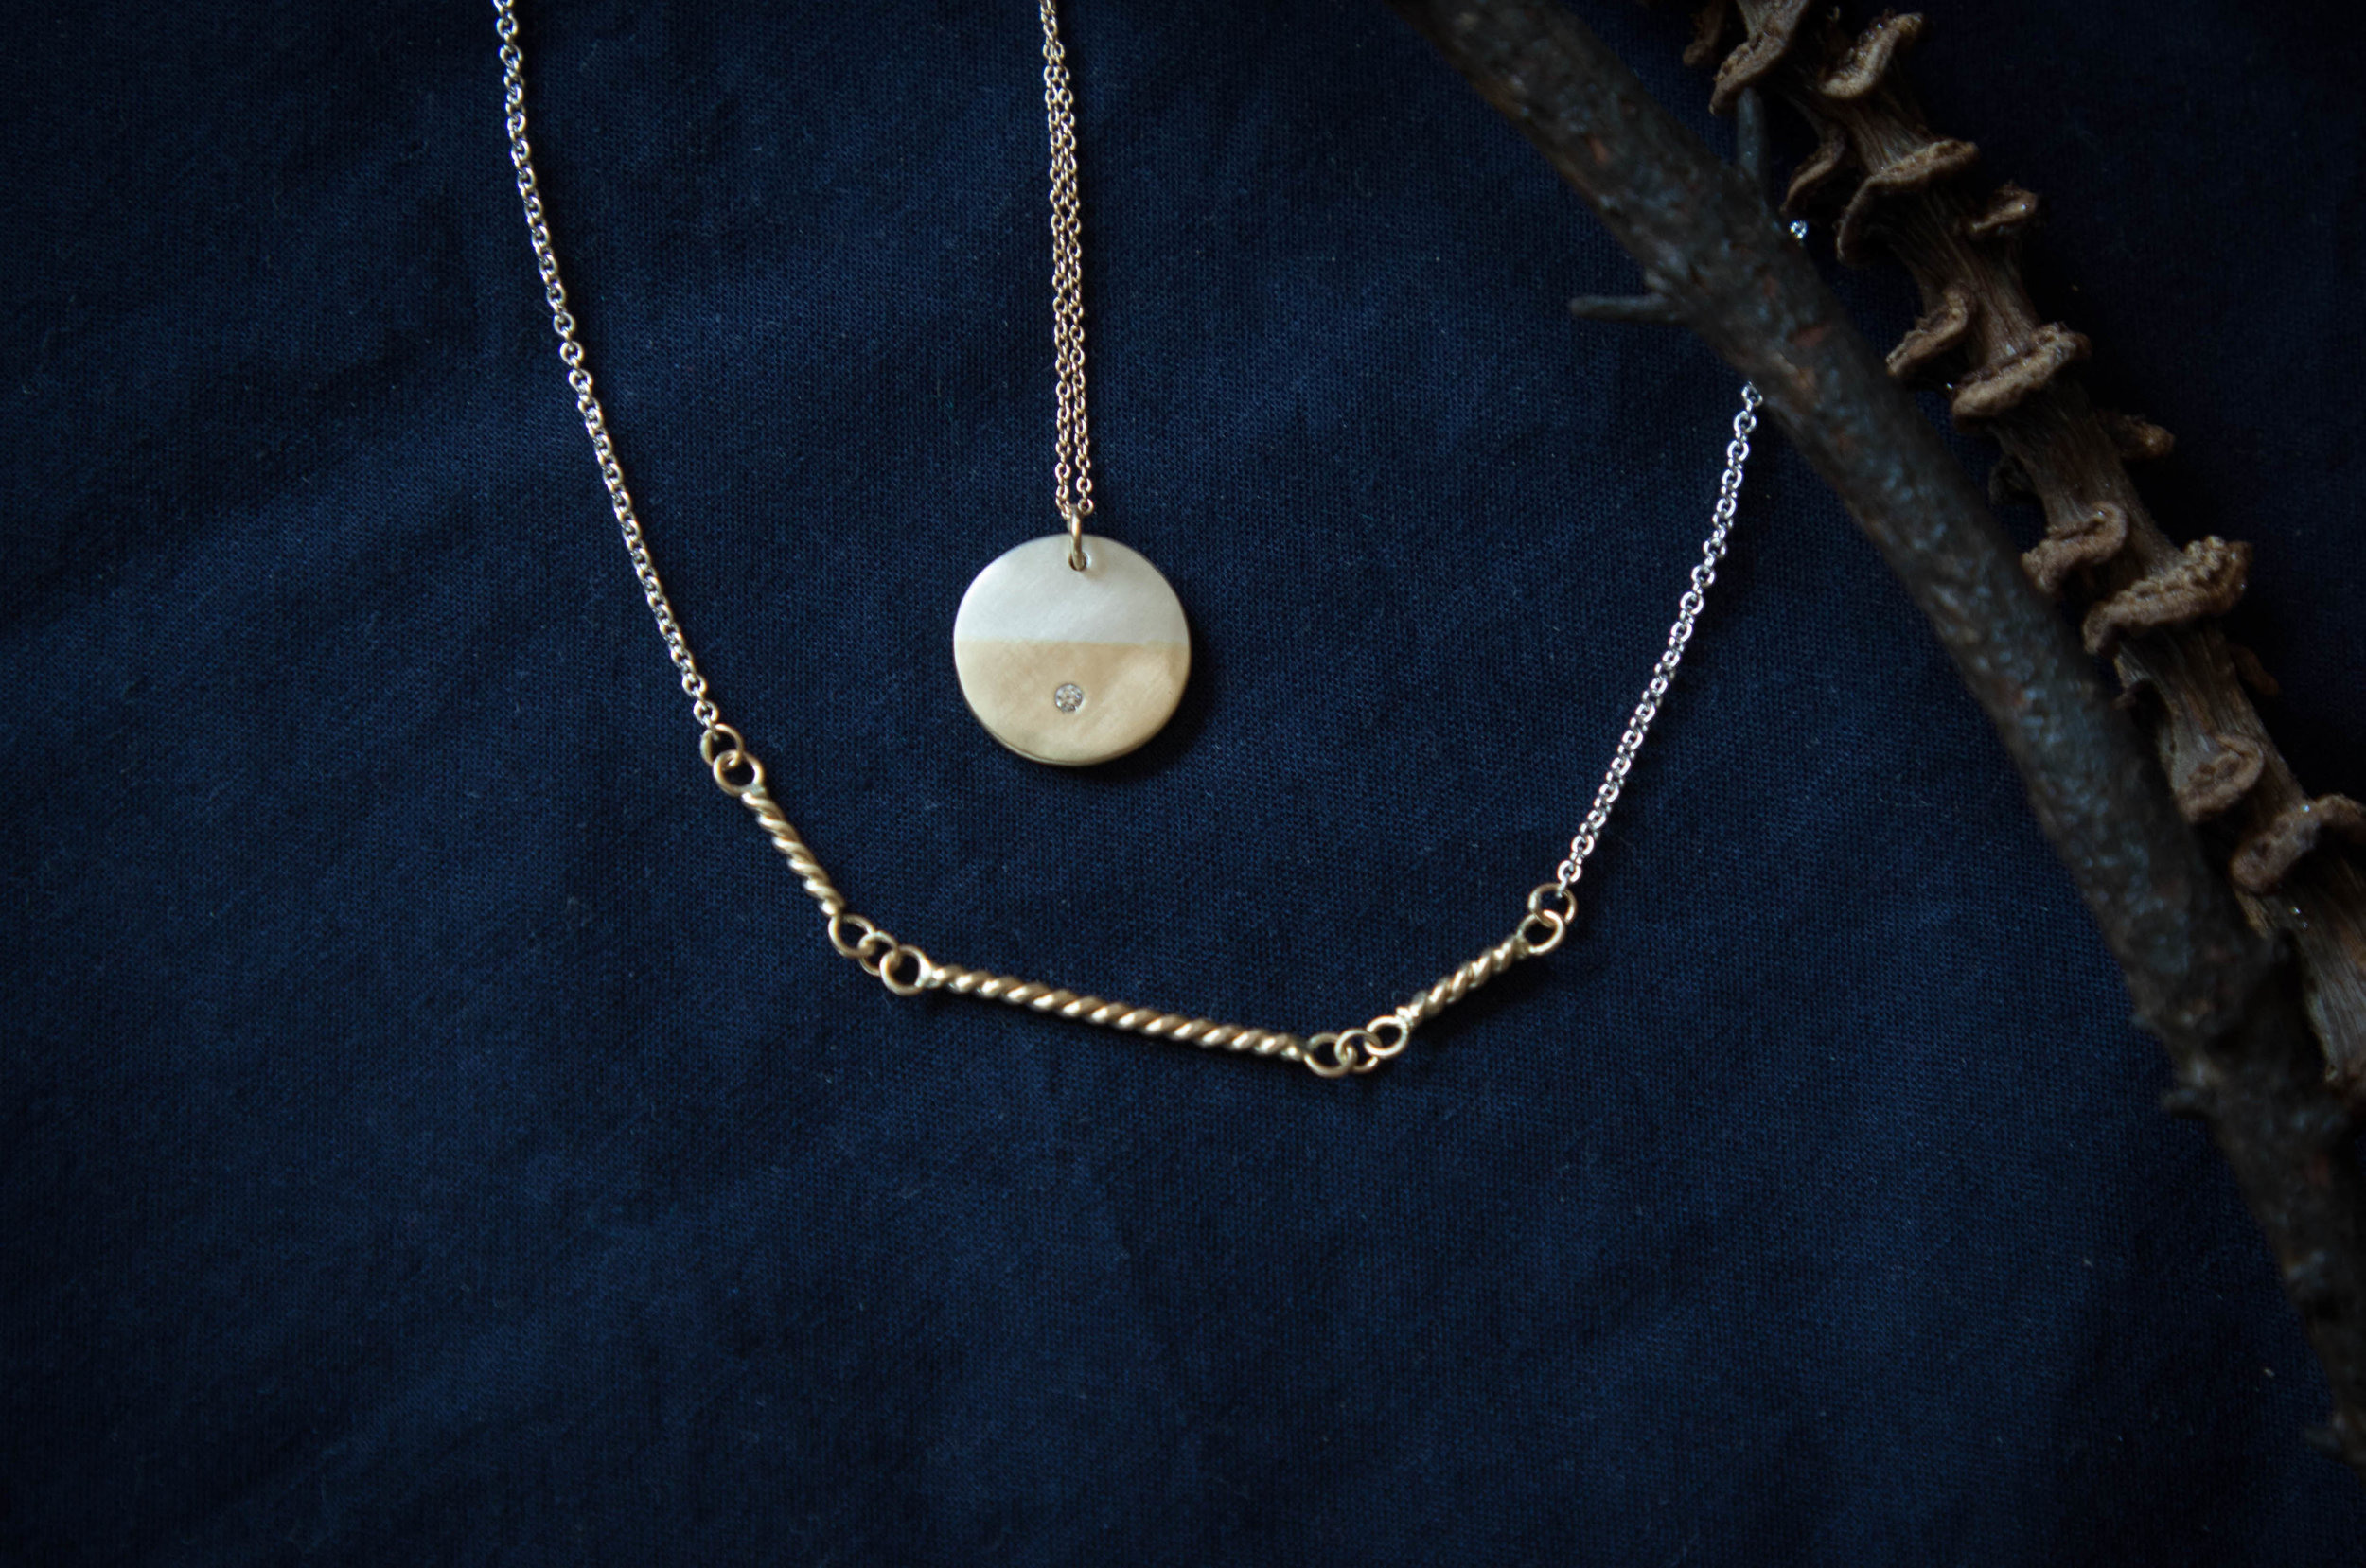 the  Sunrise Diamond  necklace in sterling silver and 14k yellow gold, along with the  Rope Jardín  necklace.